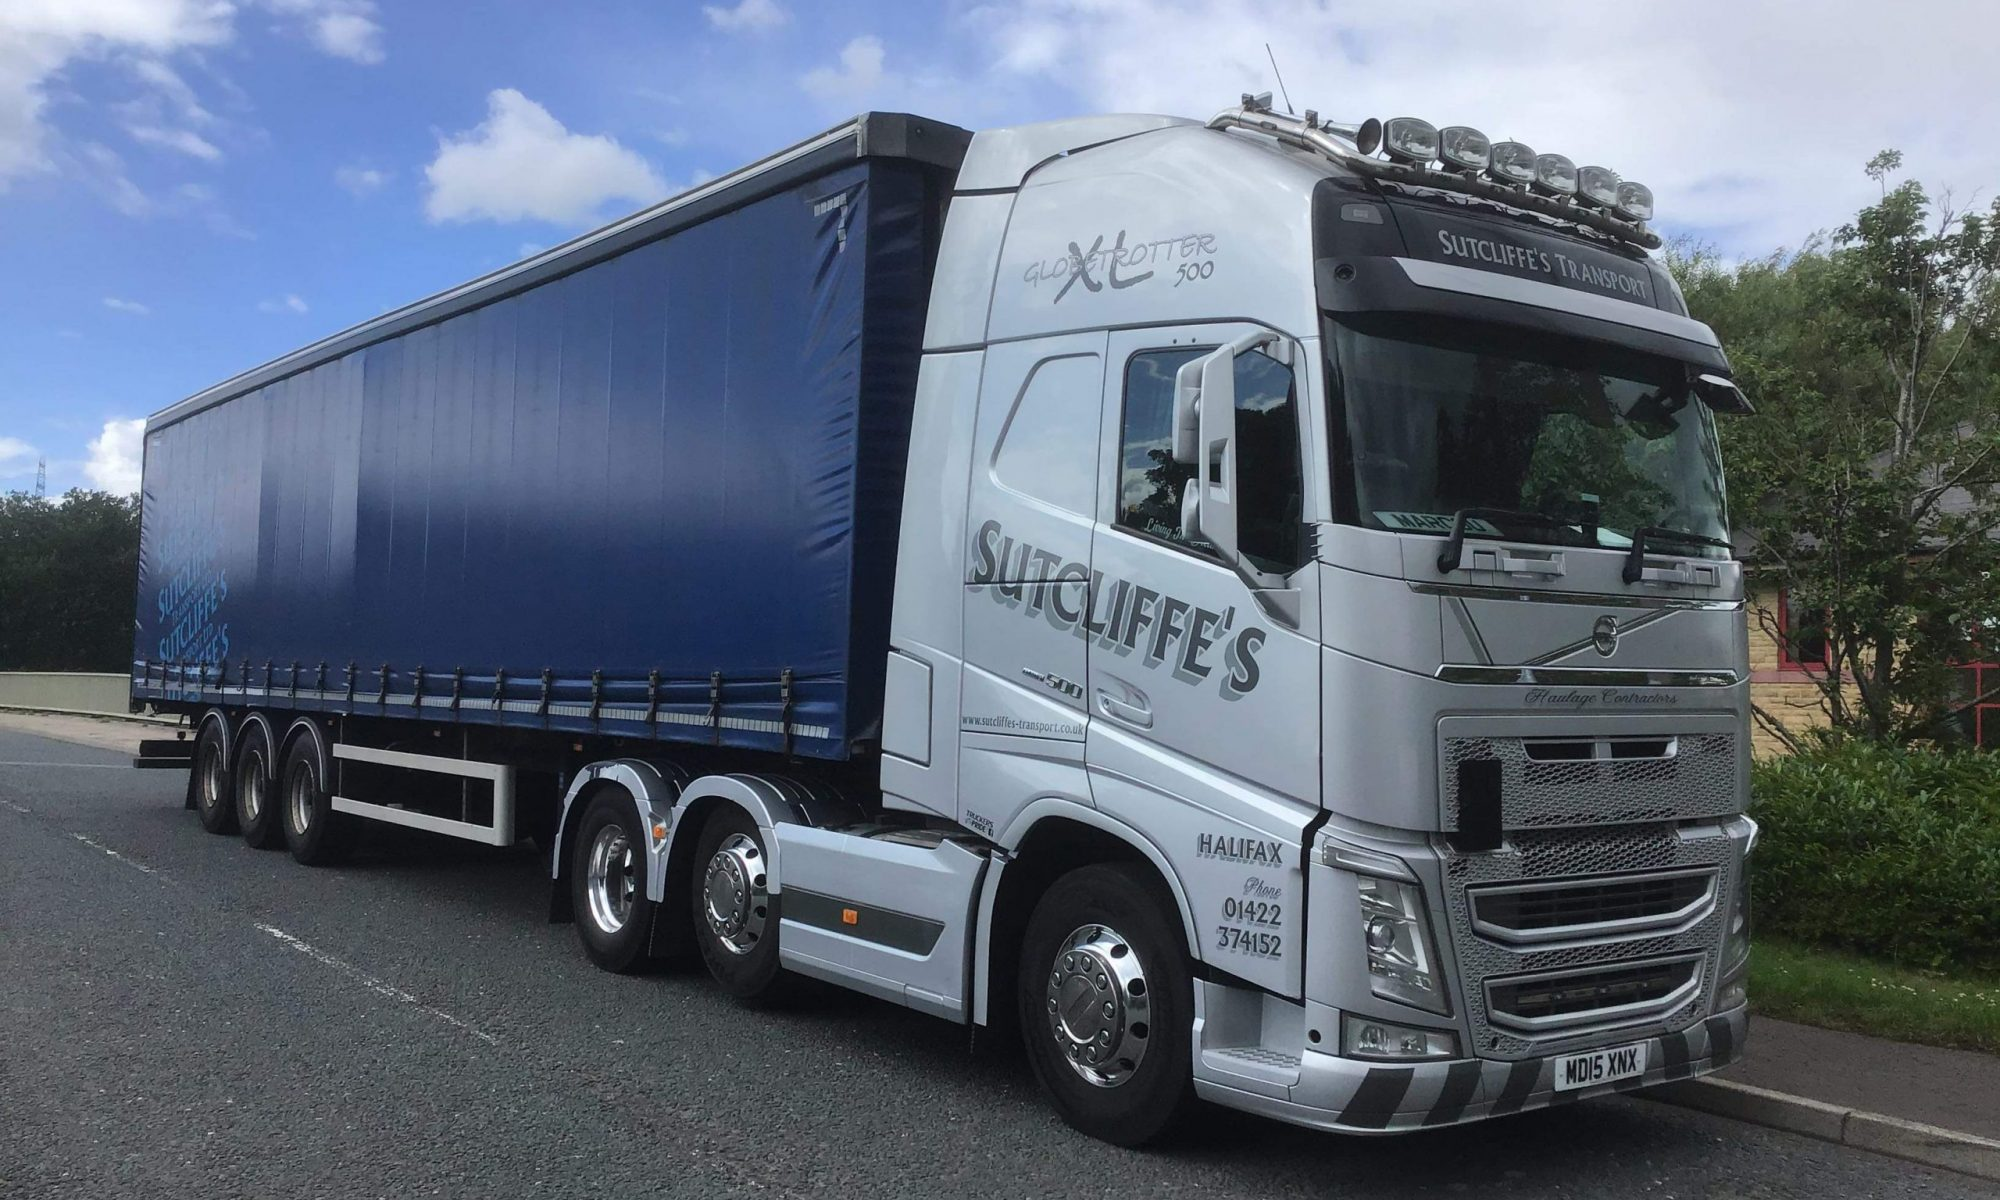 Sutcliffe's Transport Ltd